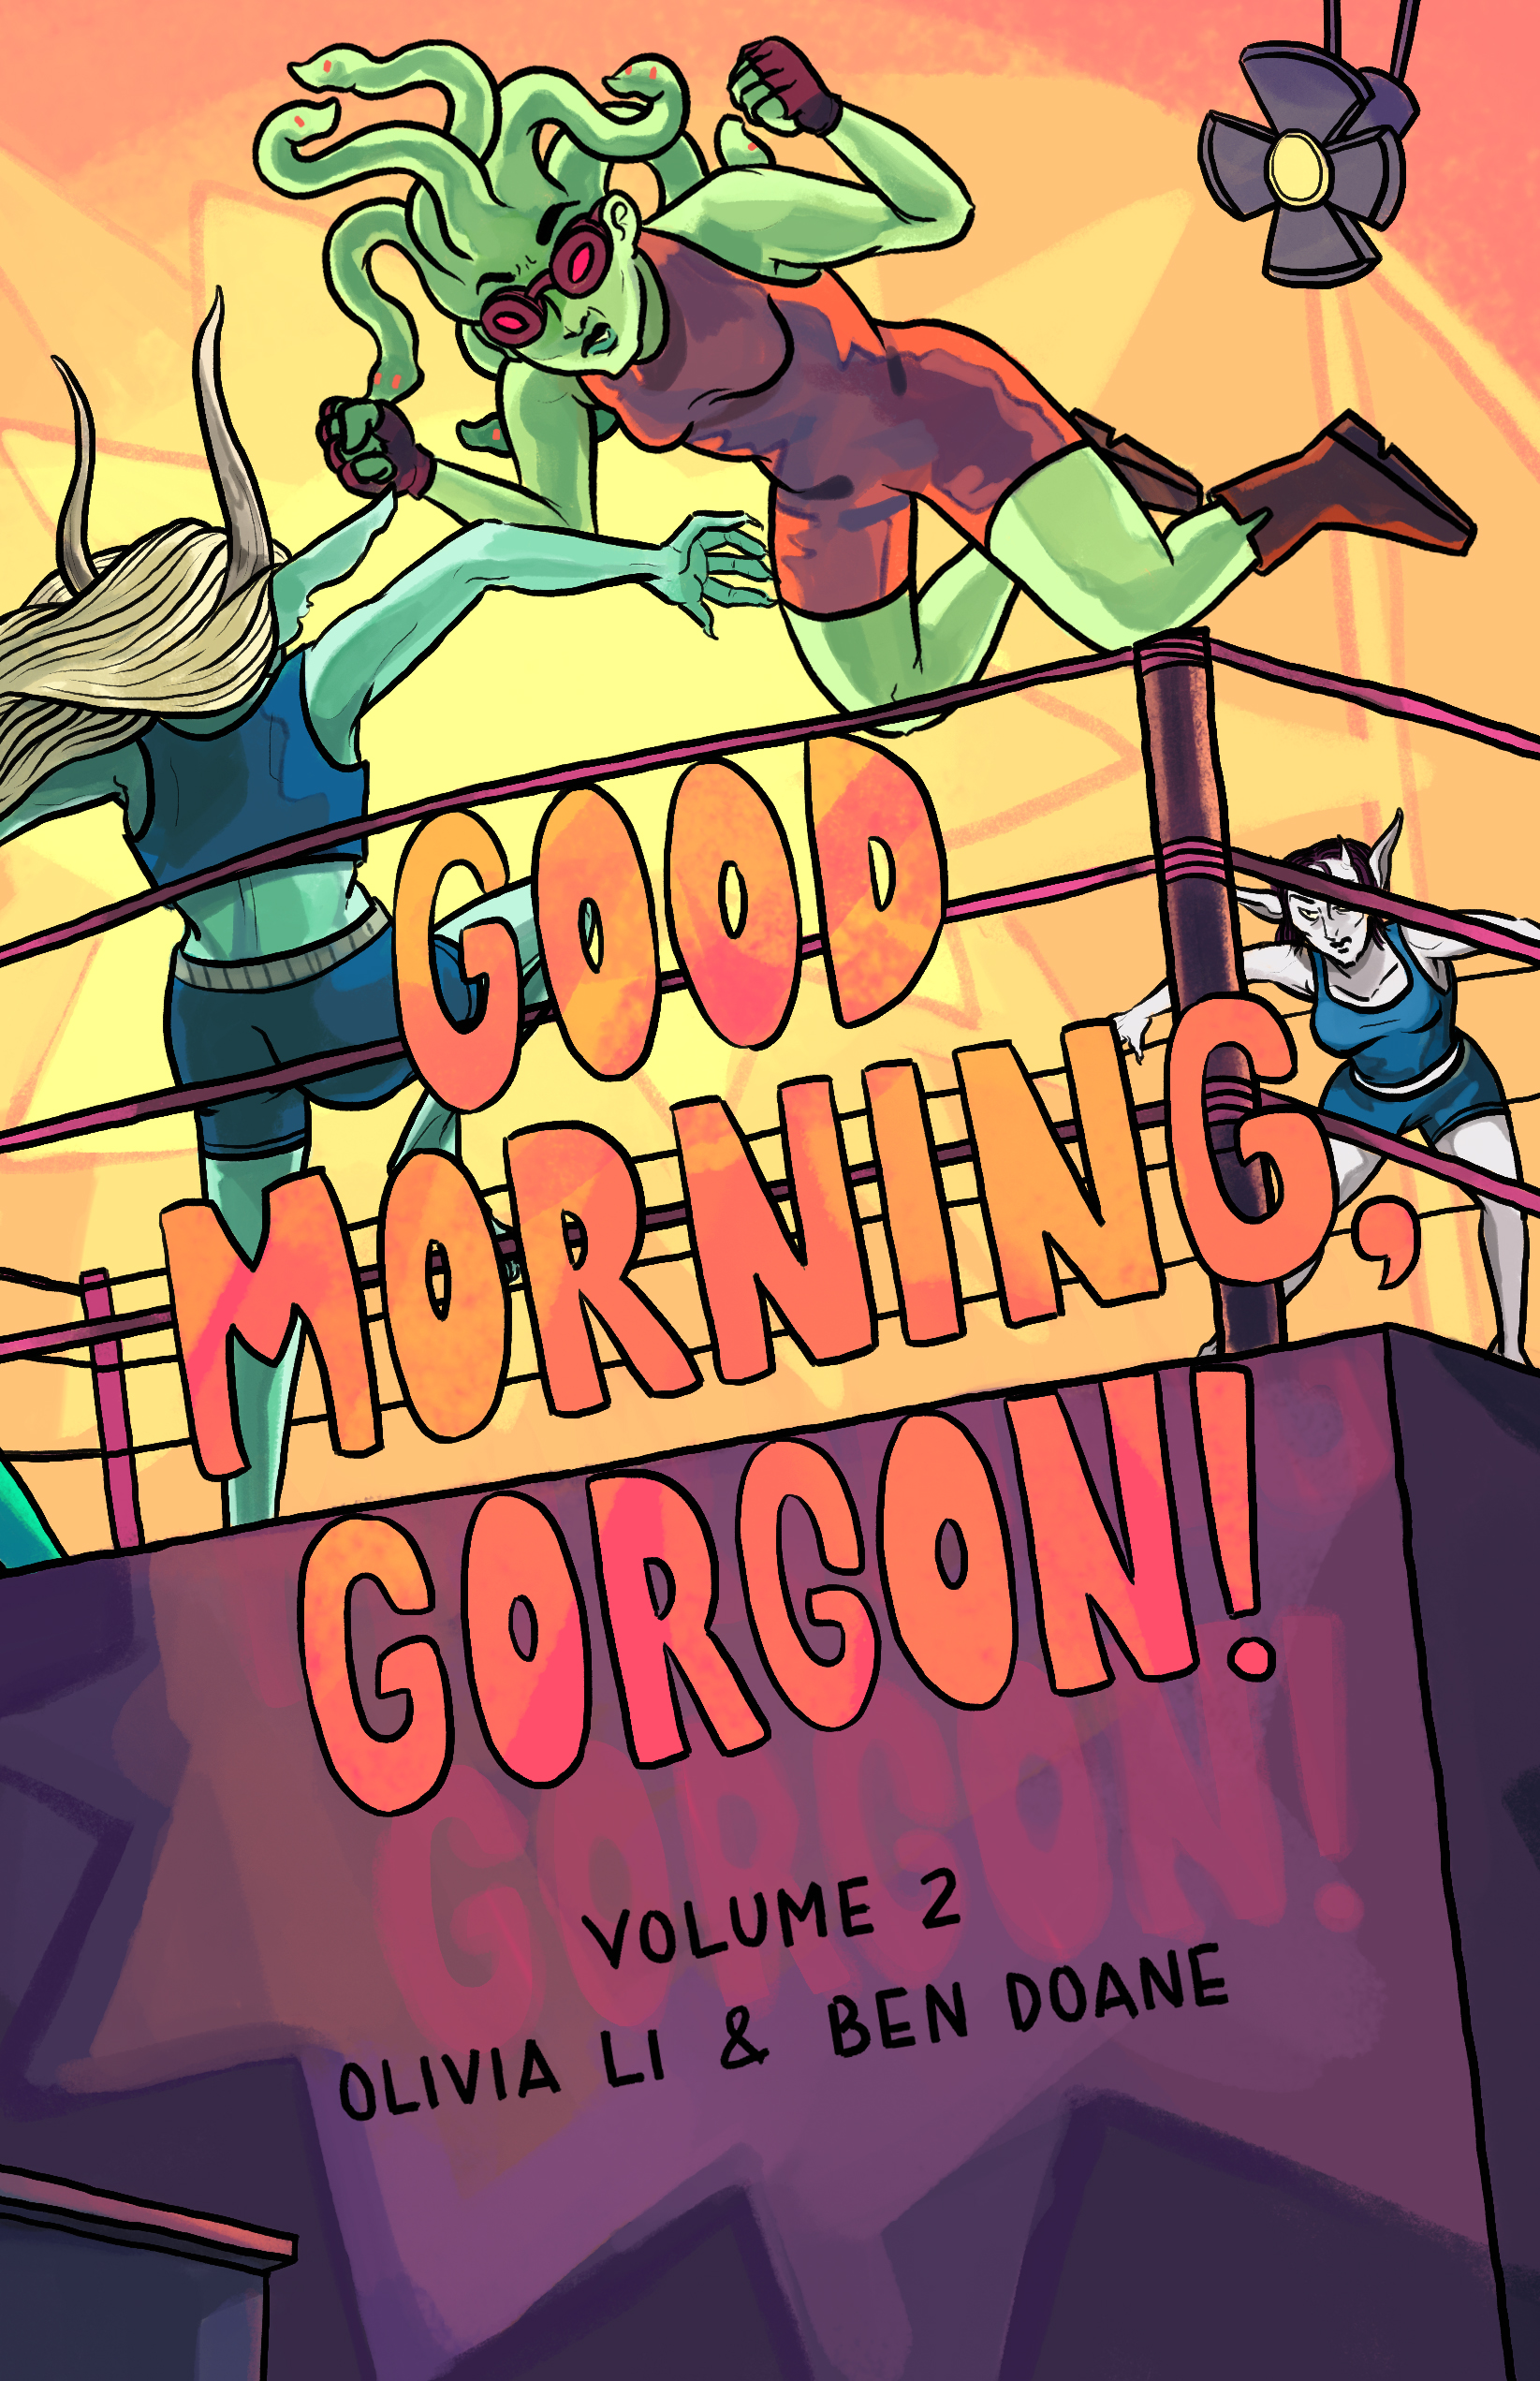 gorgon2_cover.jpg